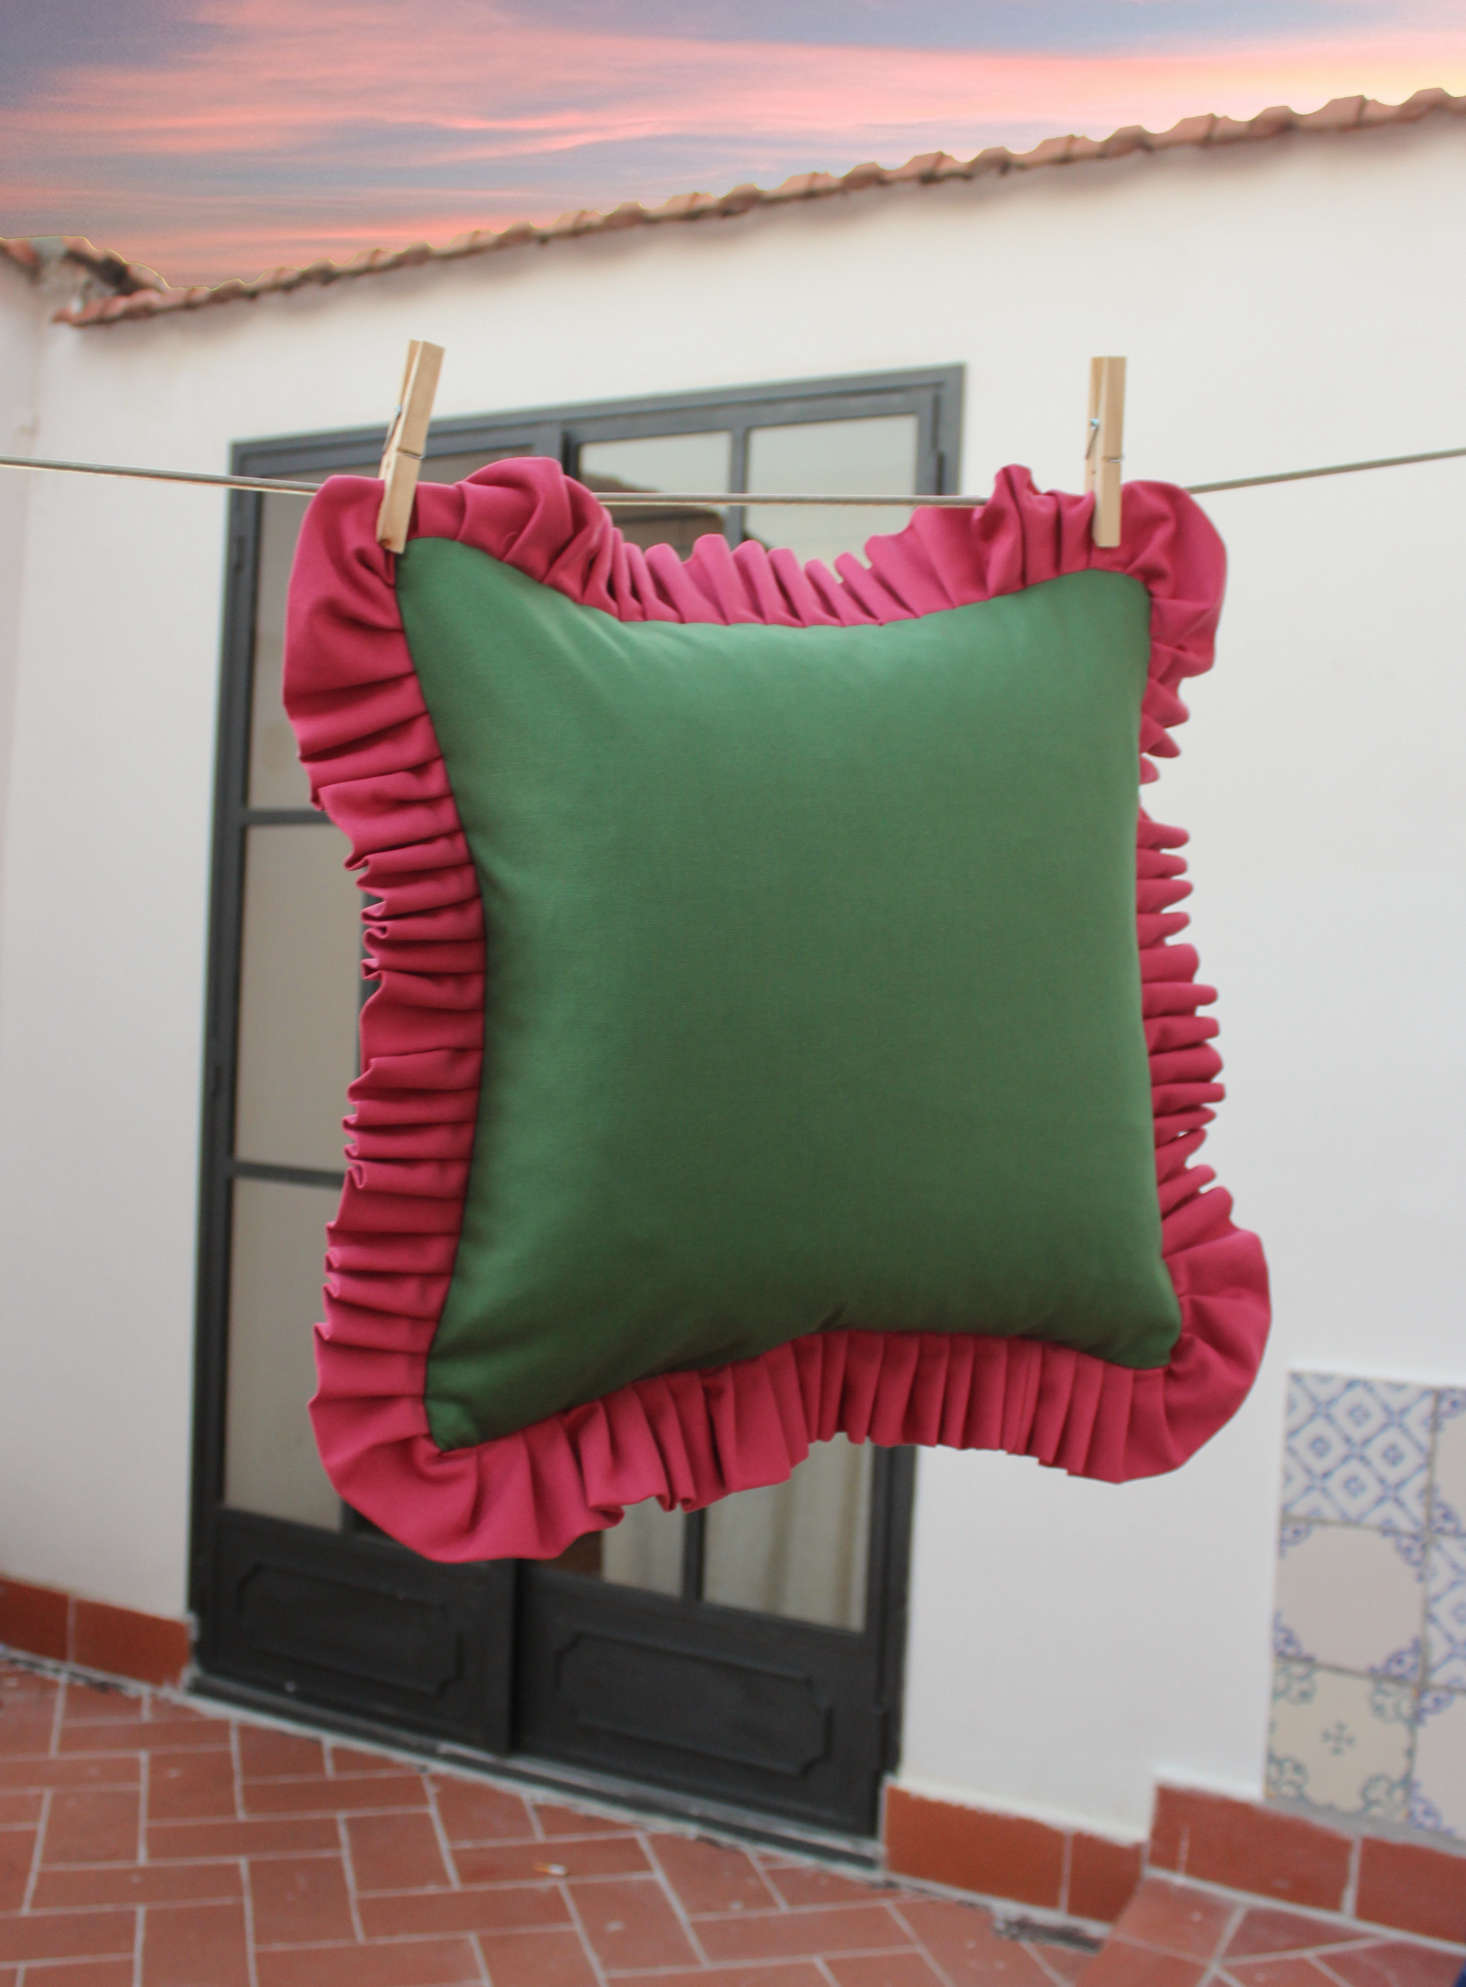 In Casa By Paboy cushions are priced at €85 for the ruffled versions, €75 for fringed, inserts not included—and yes, he ships all over. (Shipping to the States start at approximately €.) Paboy&#8